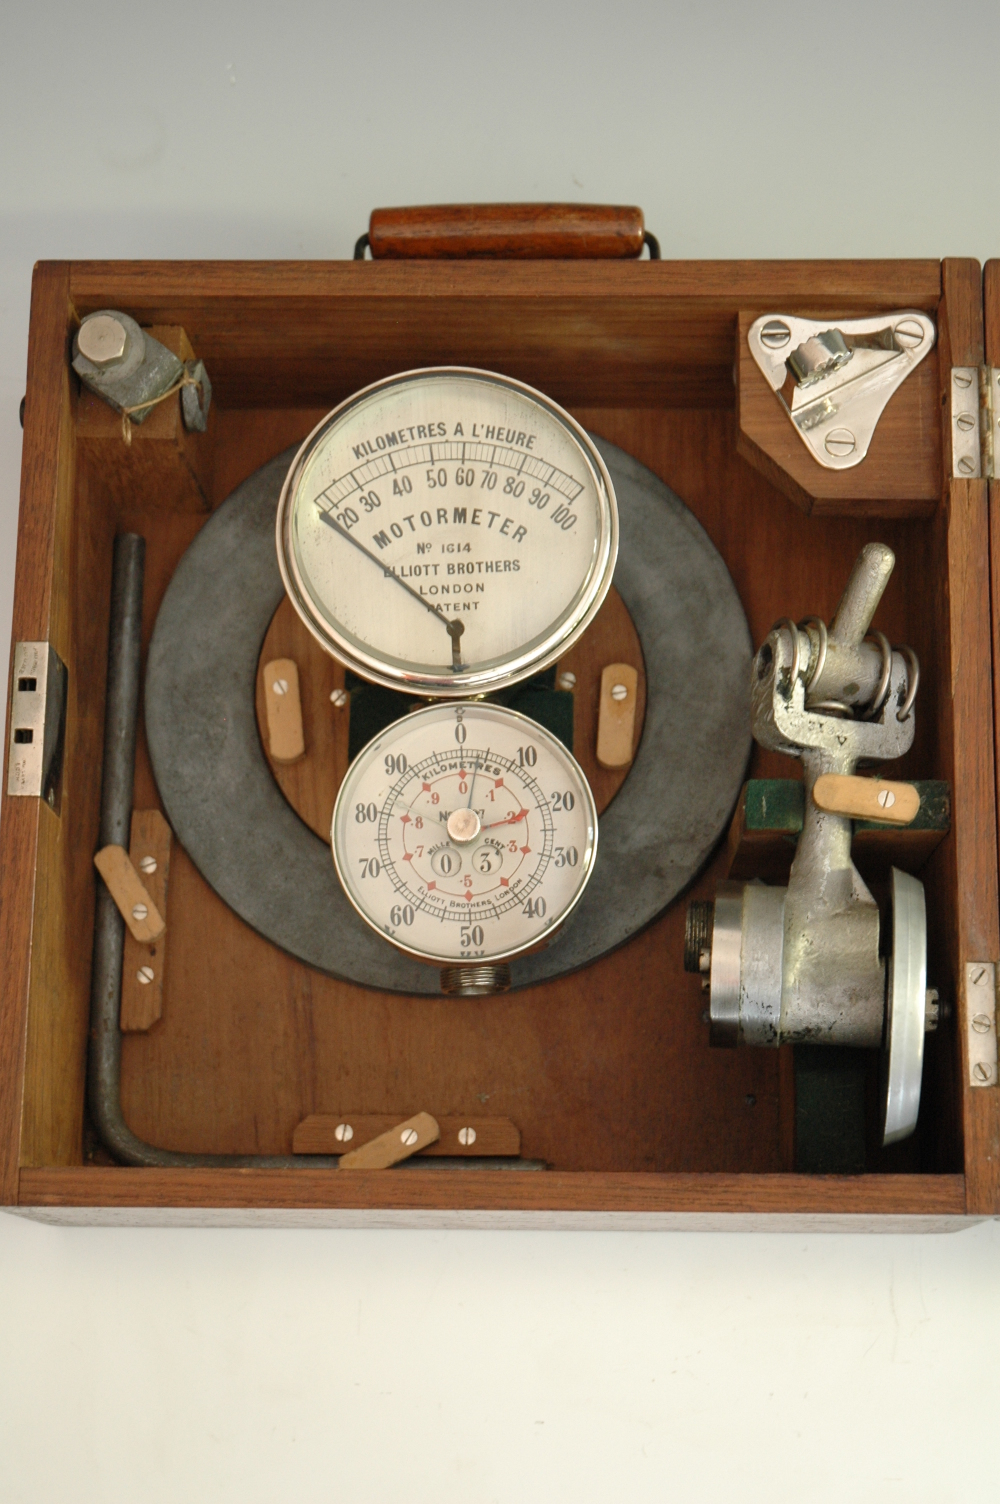 preview image for Speedometer and Odometer,with accessories  by Elliott Brothers, c.1905